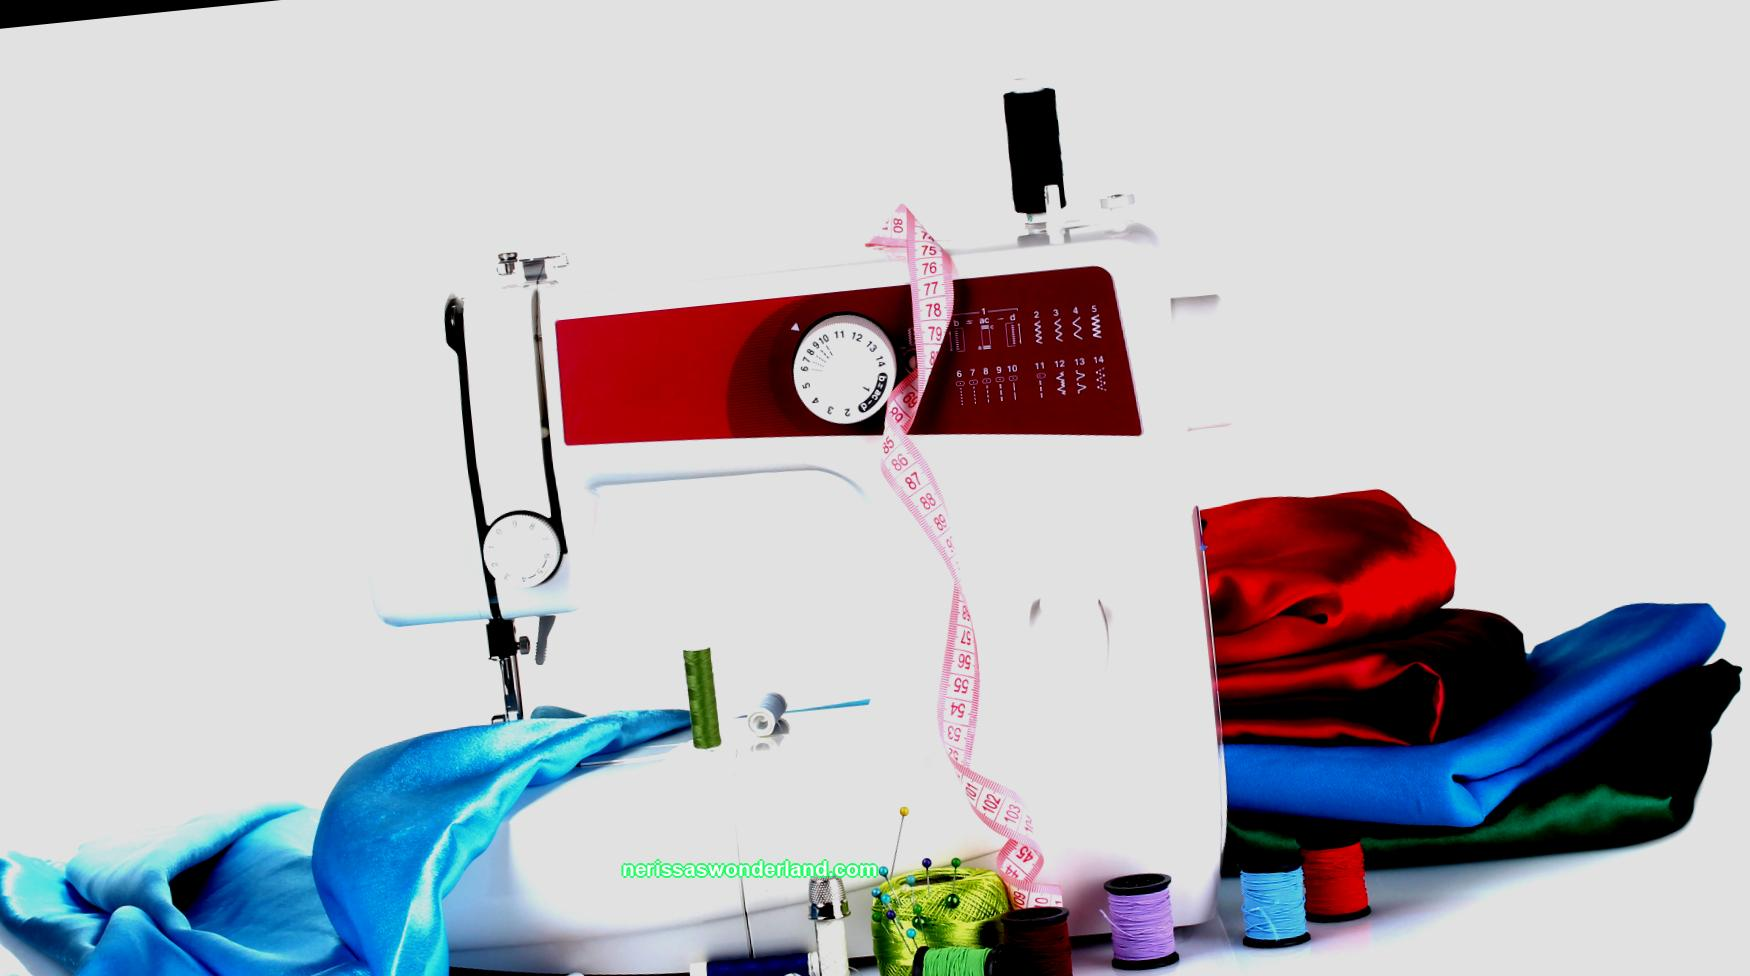 How to choose the right sewing machine for home use